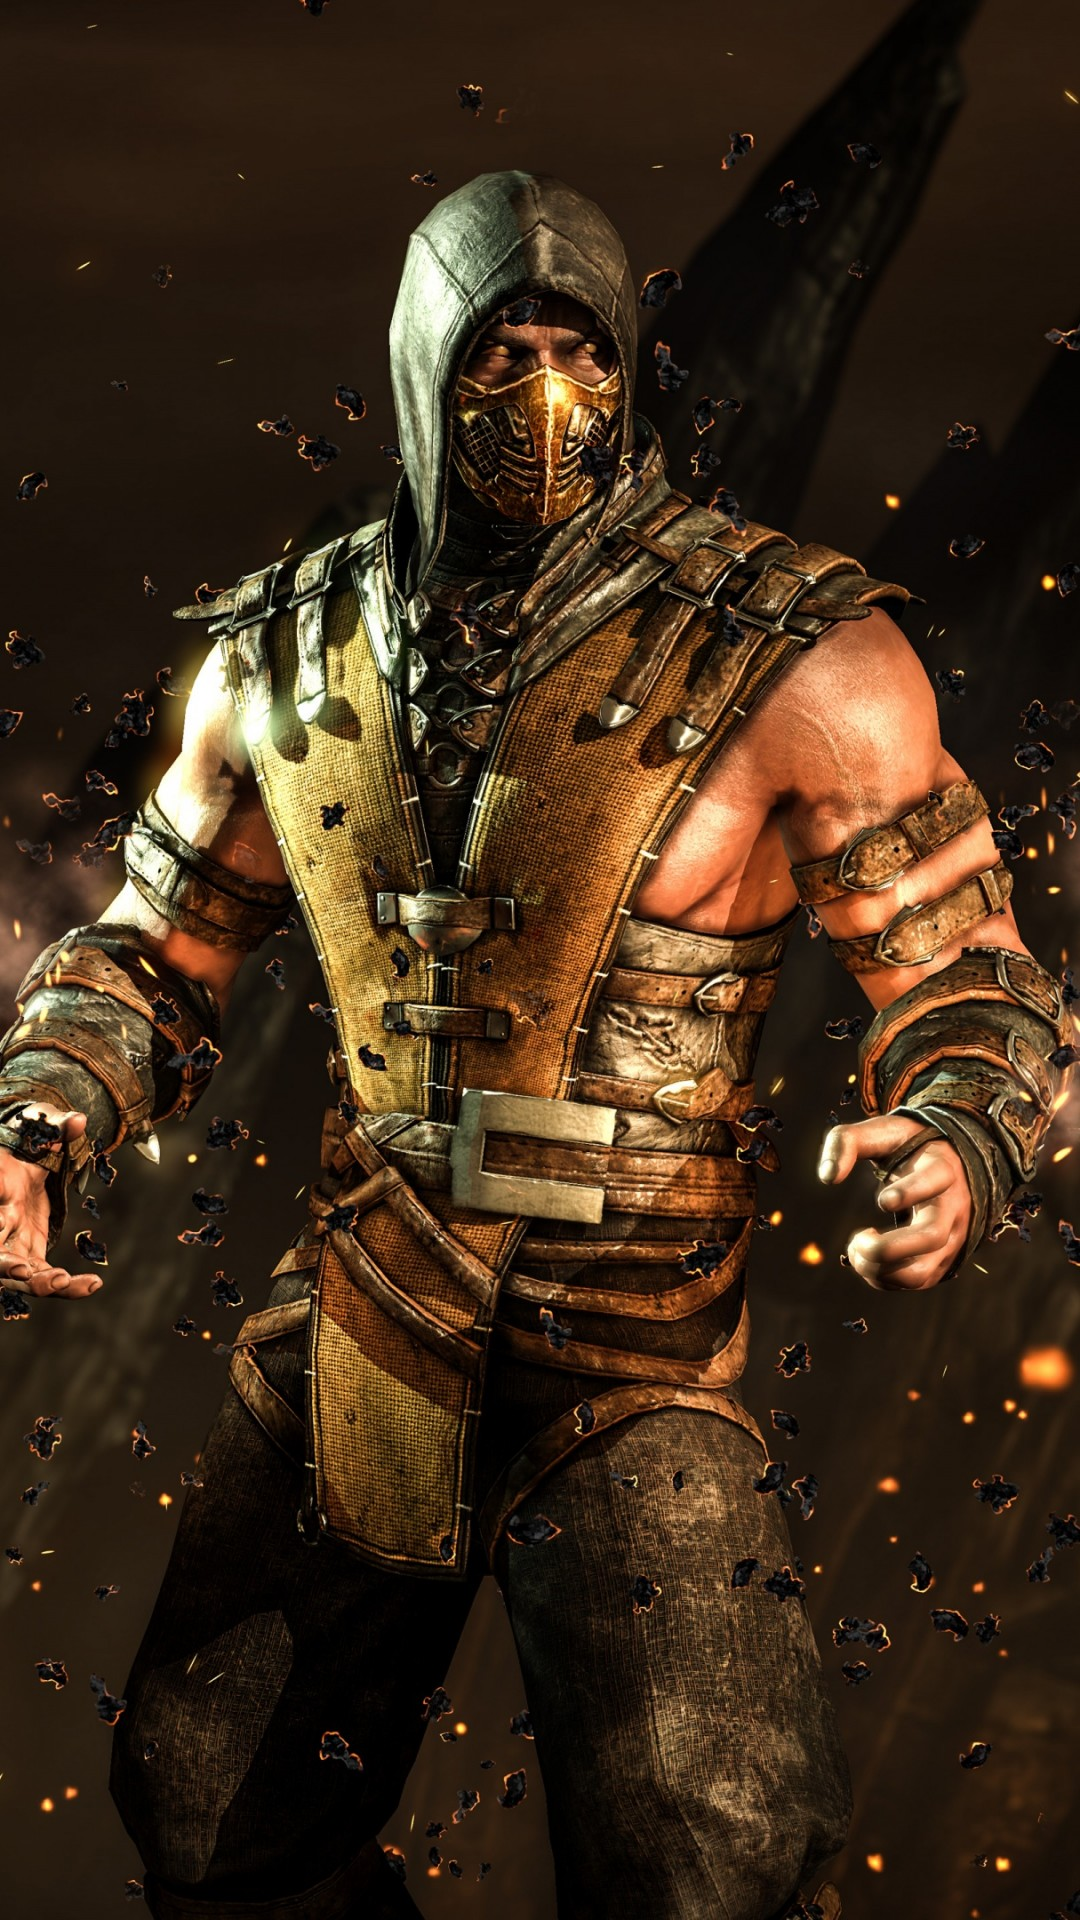 mortal kombat x 1080x1920 scorpion fighting ps4 xbox one 10739